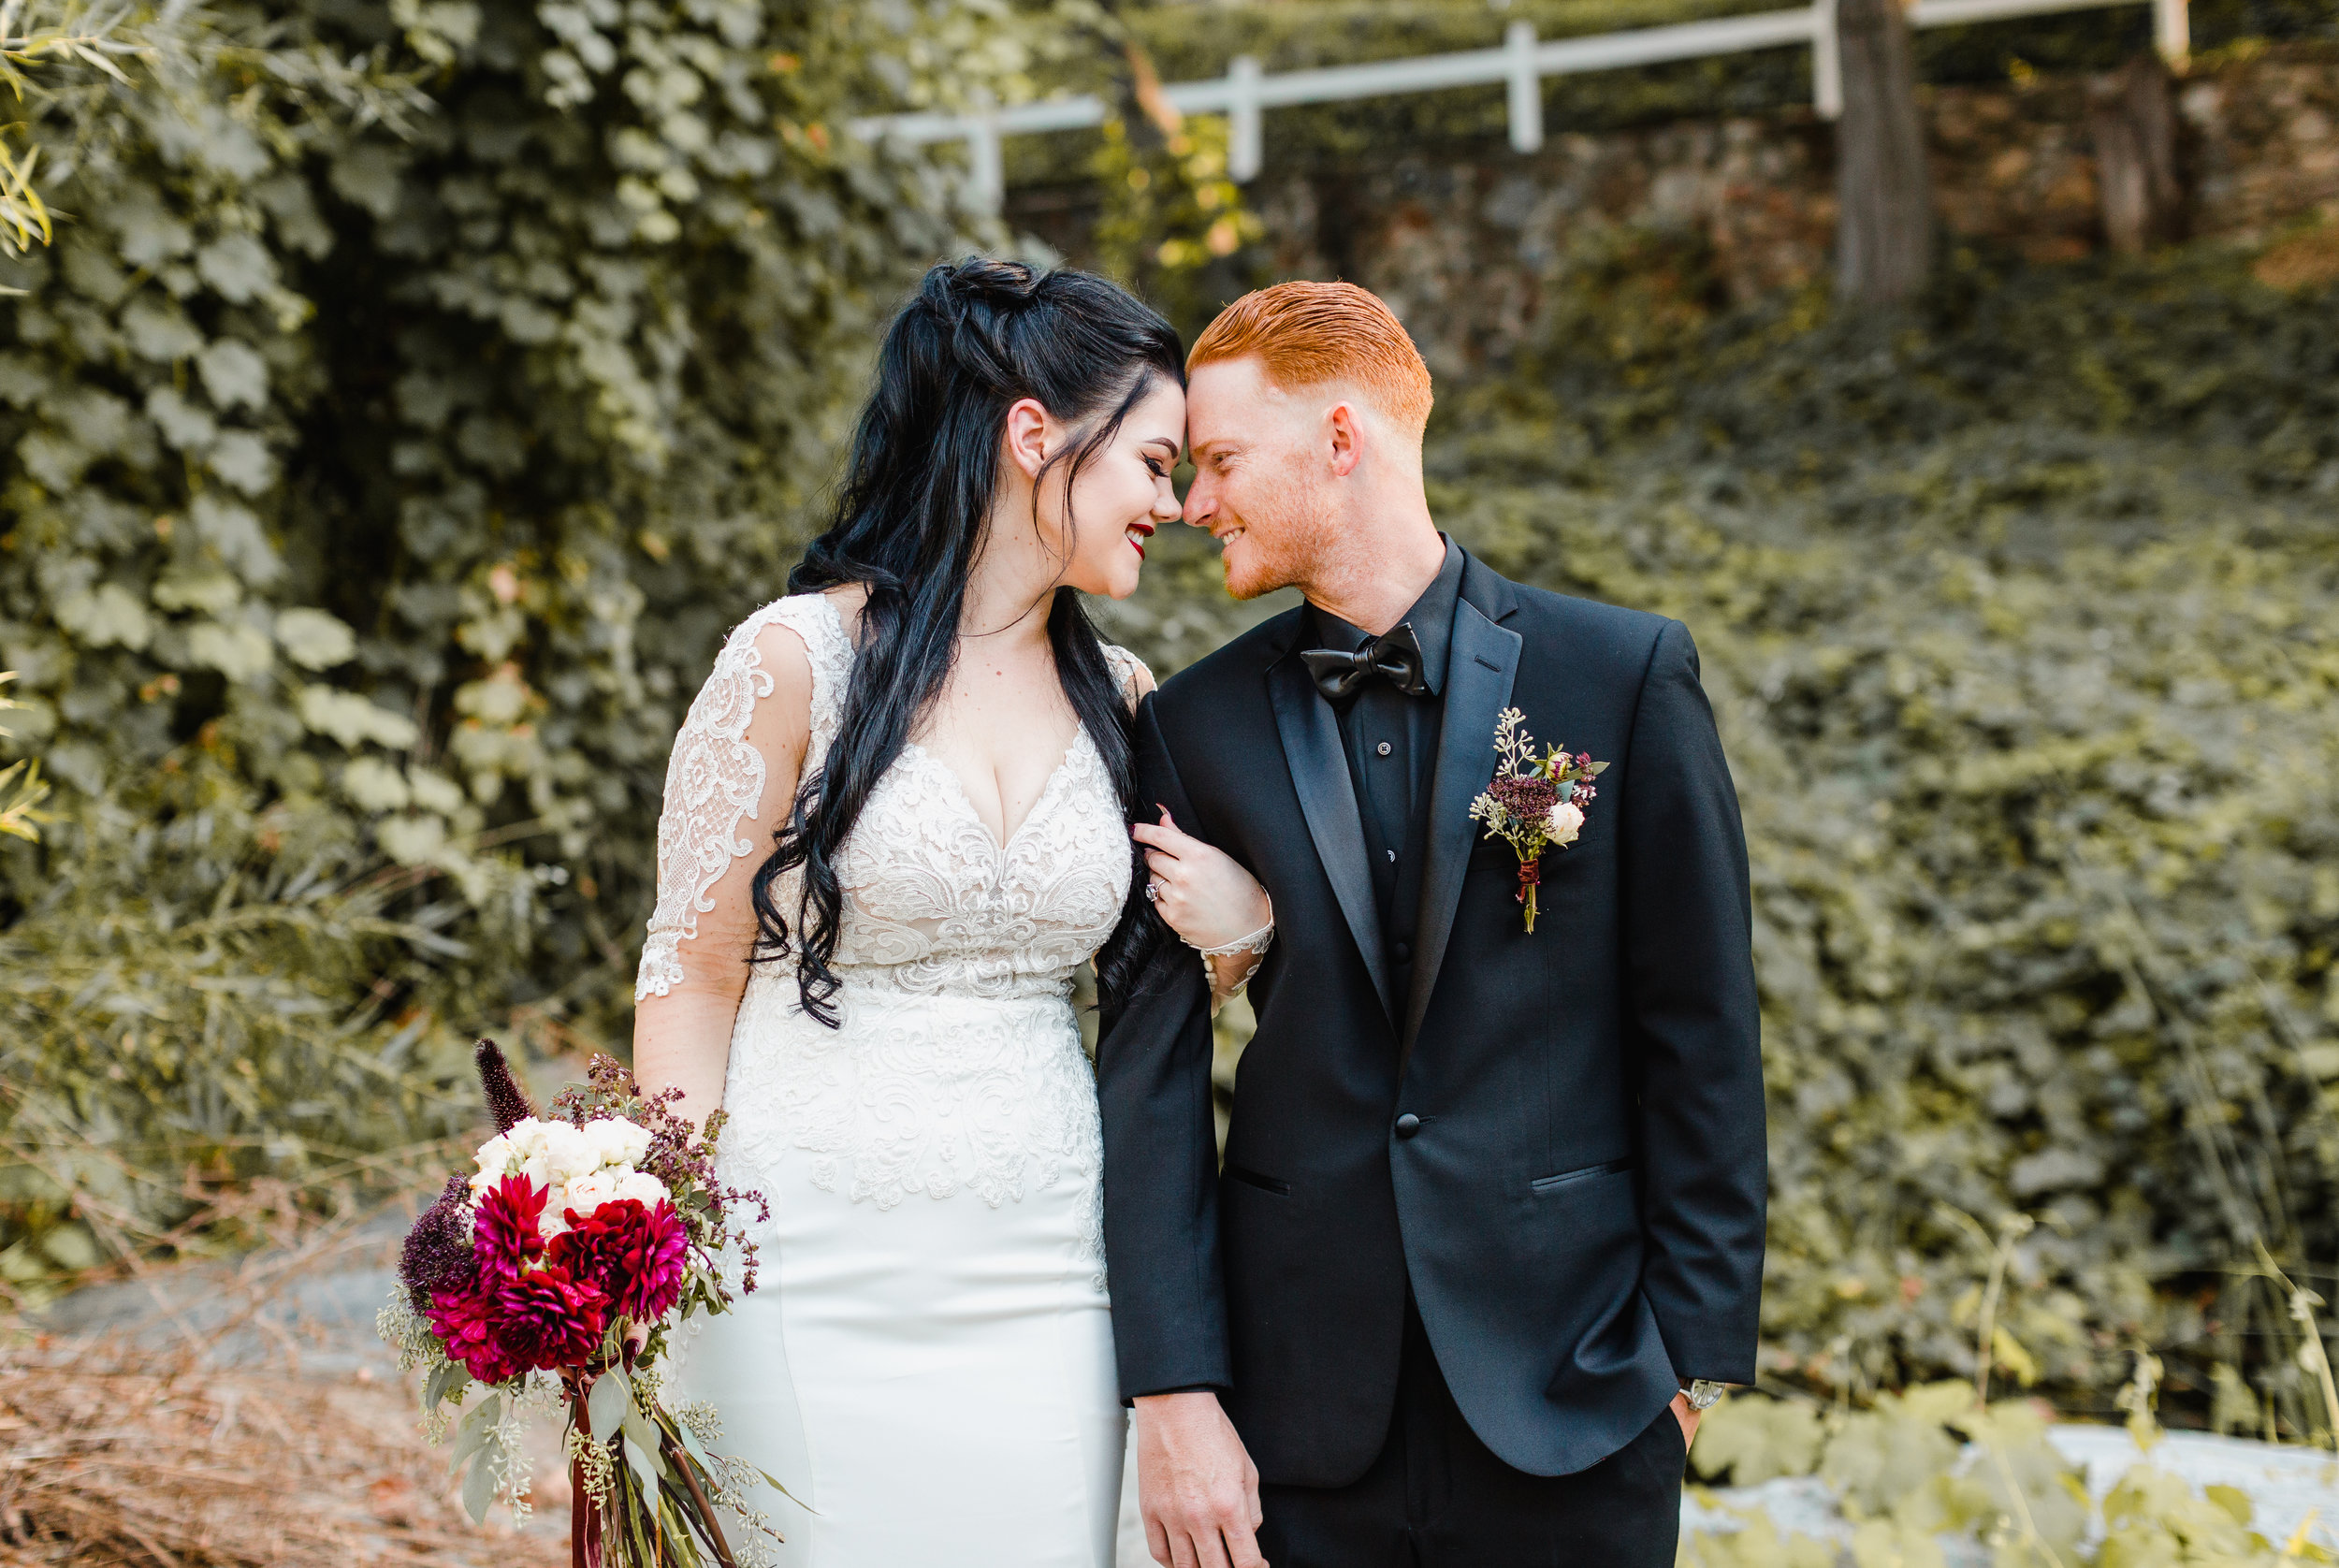 Events by Lift   Wedding Ceremony   Event Planning   San Diego